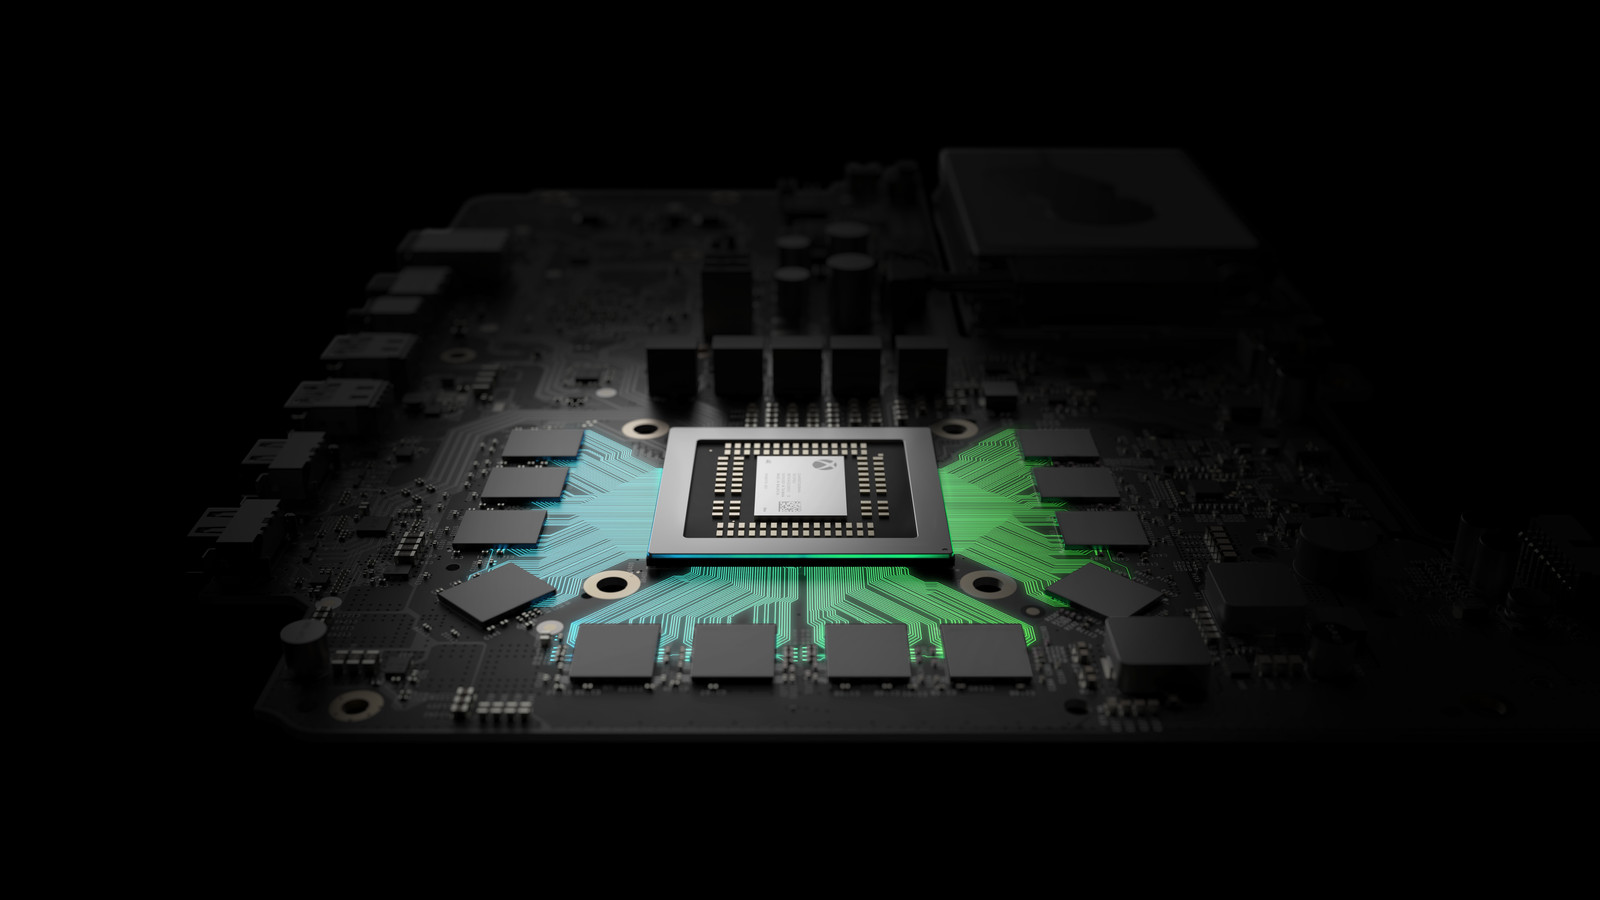 Project Scorpio focuses Xbox on games — so where are they?